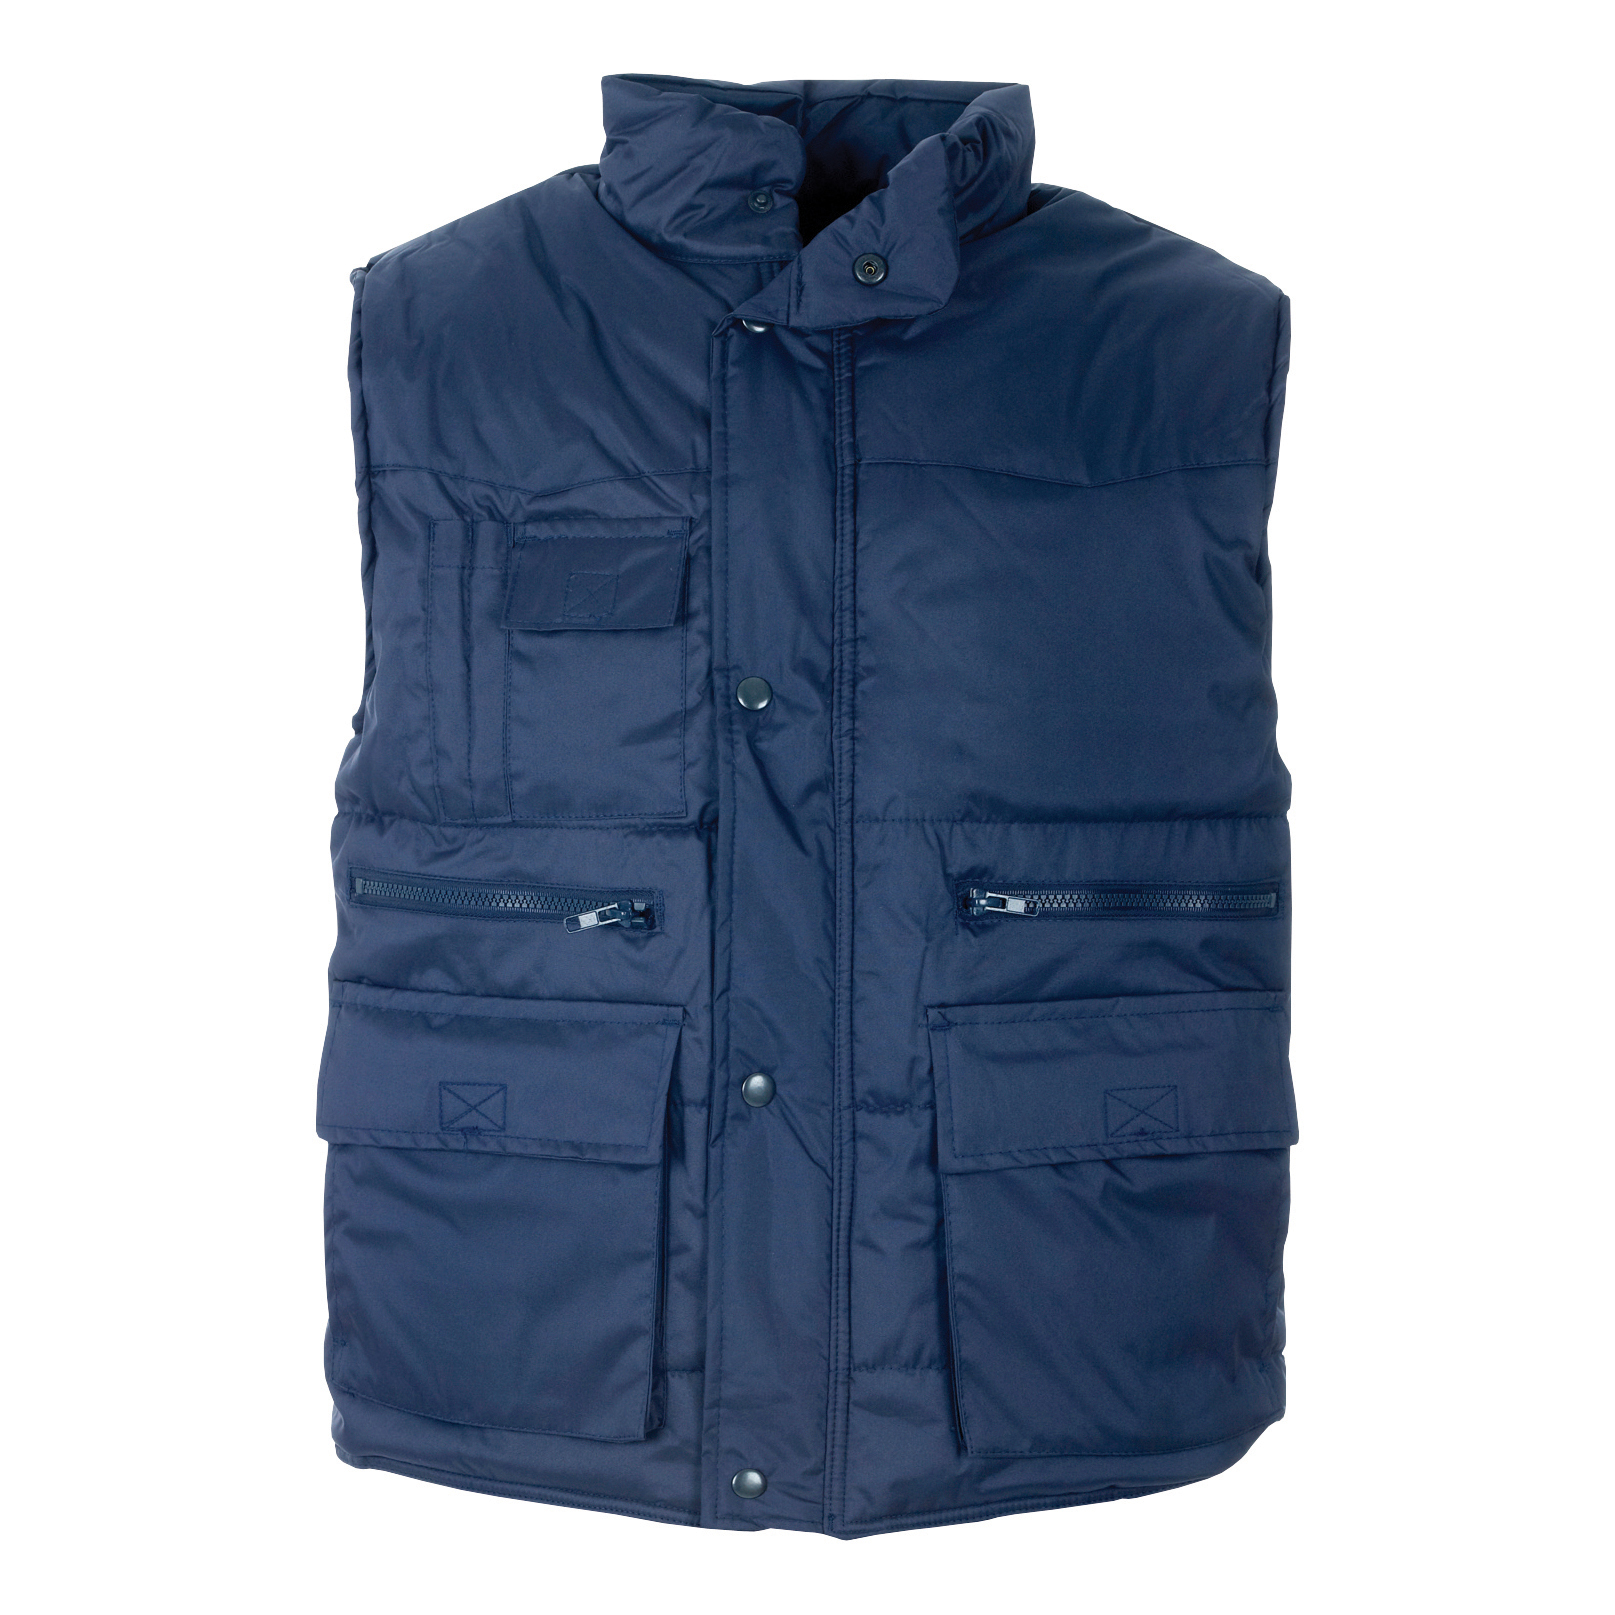 Bodywarmers Body Warmer Polyester with Padding & Multi Pockets Large Navy Ref HBNL *Approx 3 Day Leadtime*